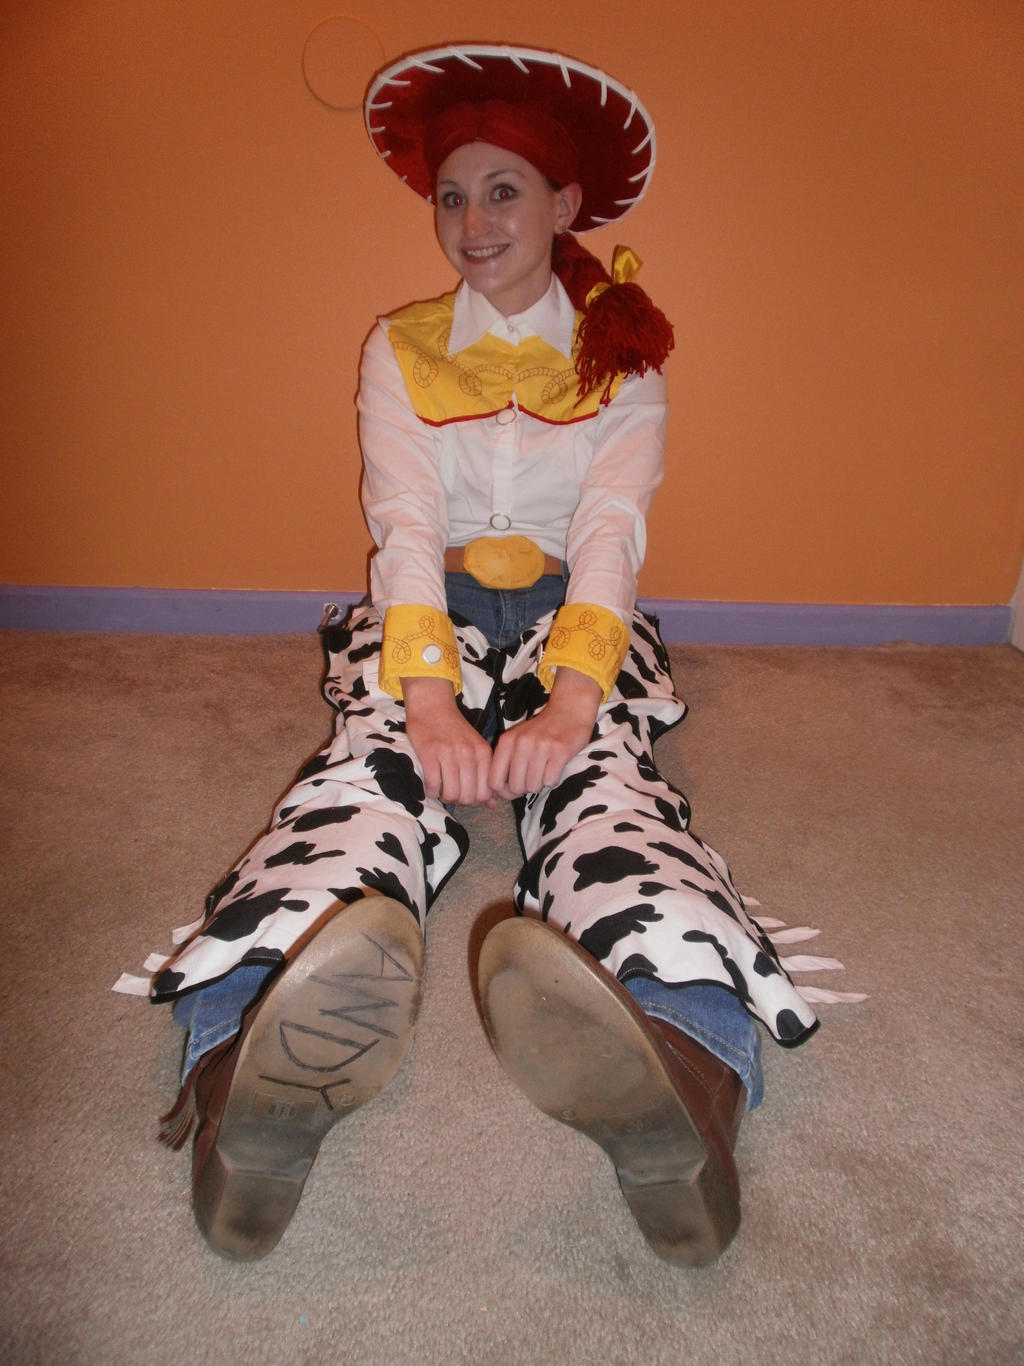 Toy Story Jessie Cosplay by mboes on DeviantArt OVhxs8rn